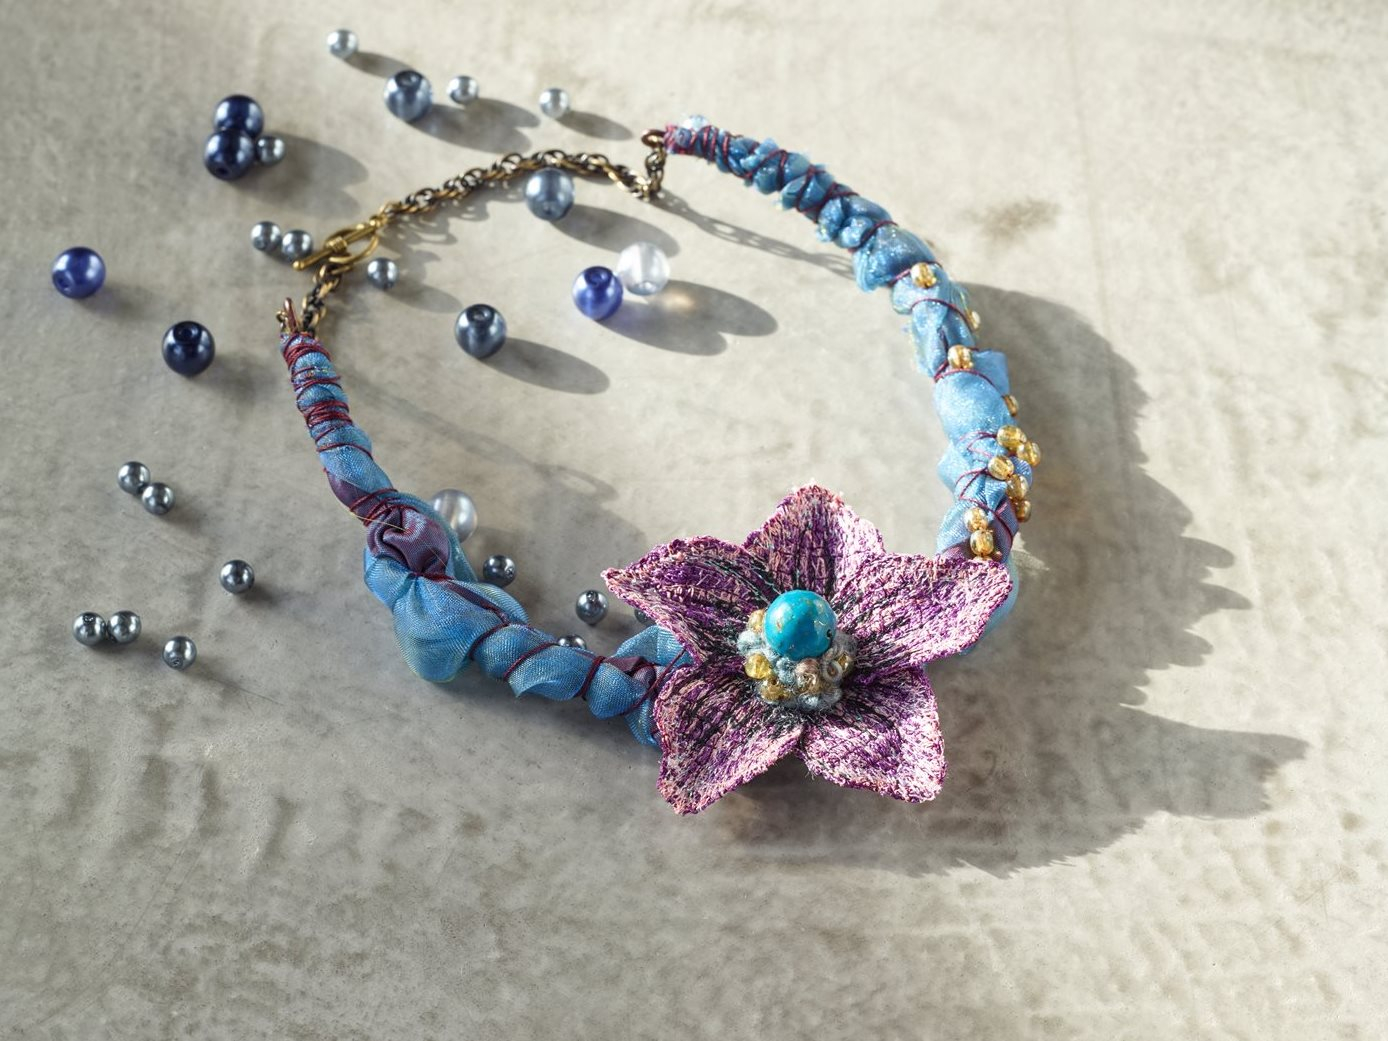 Levente Sulyok - Flower necklace